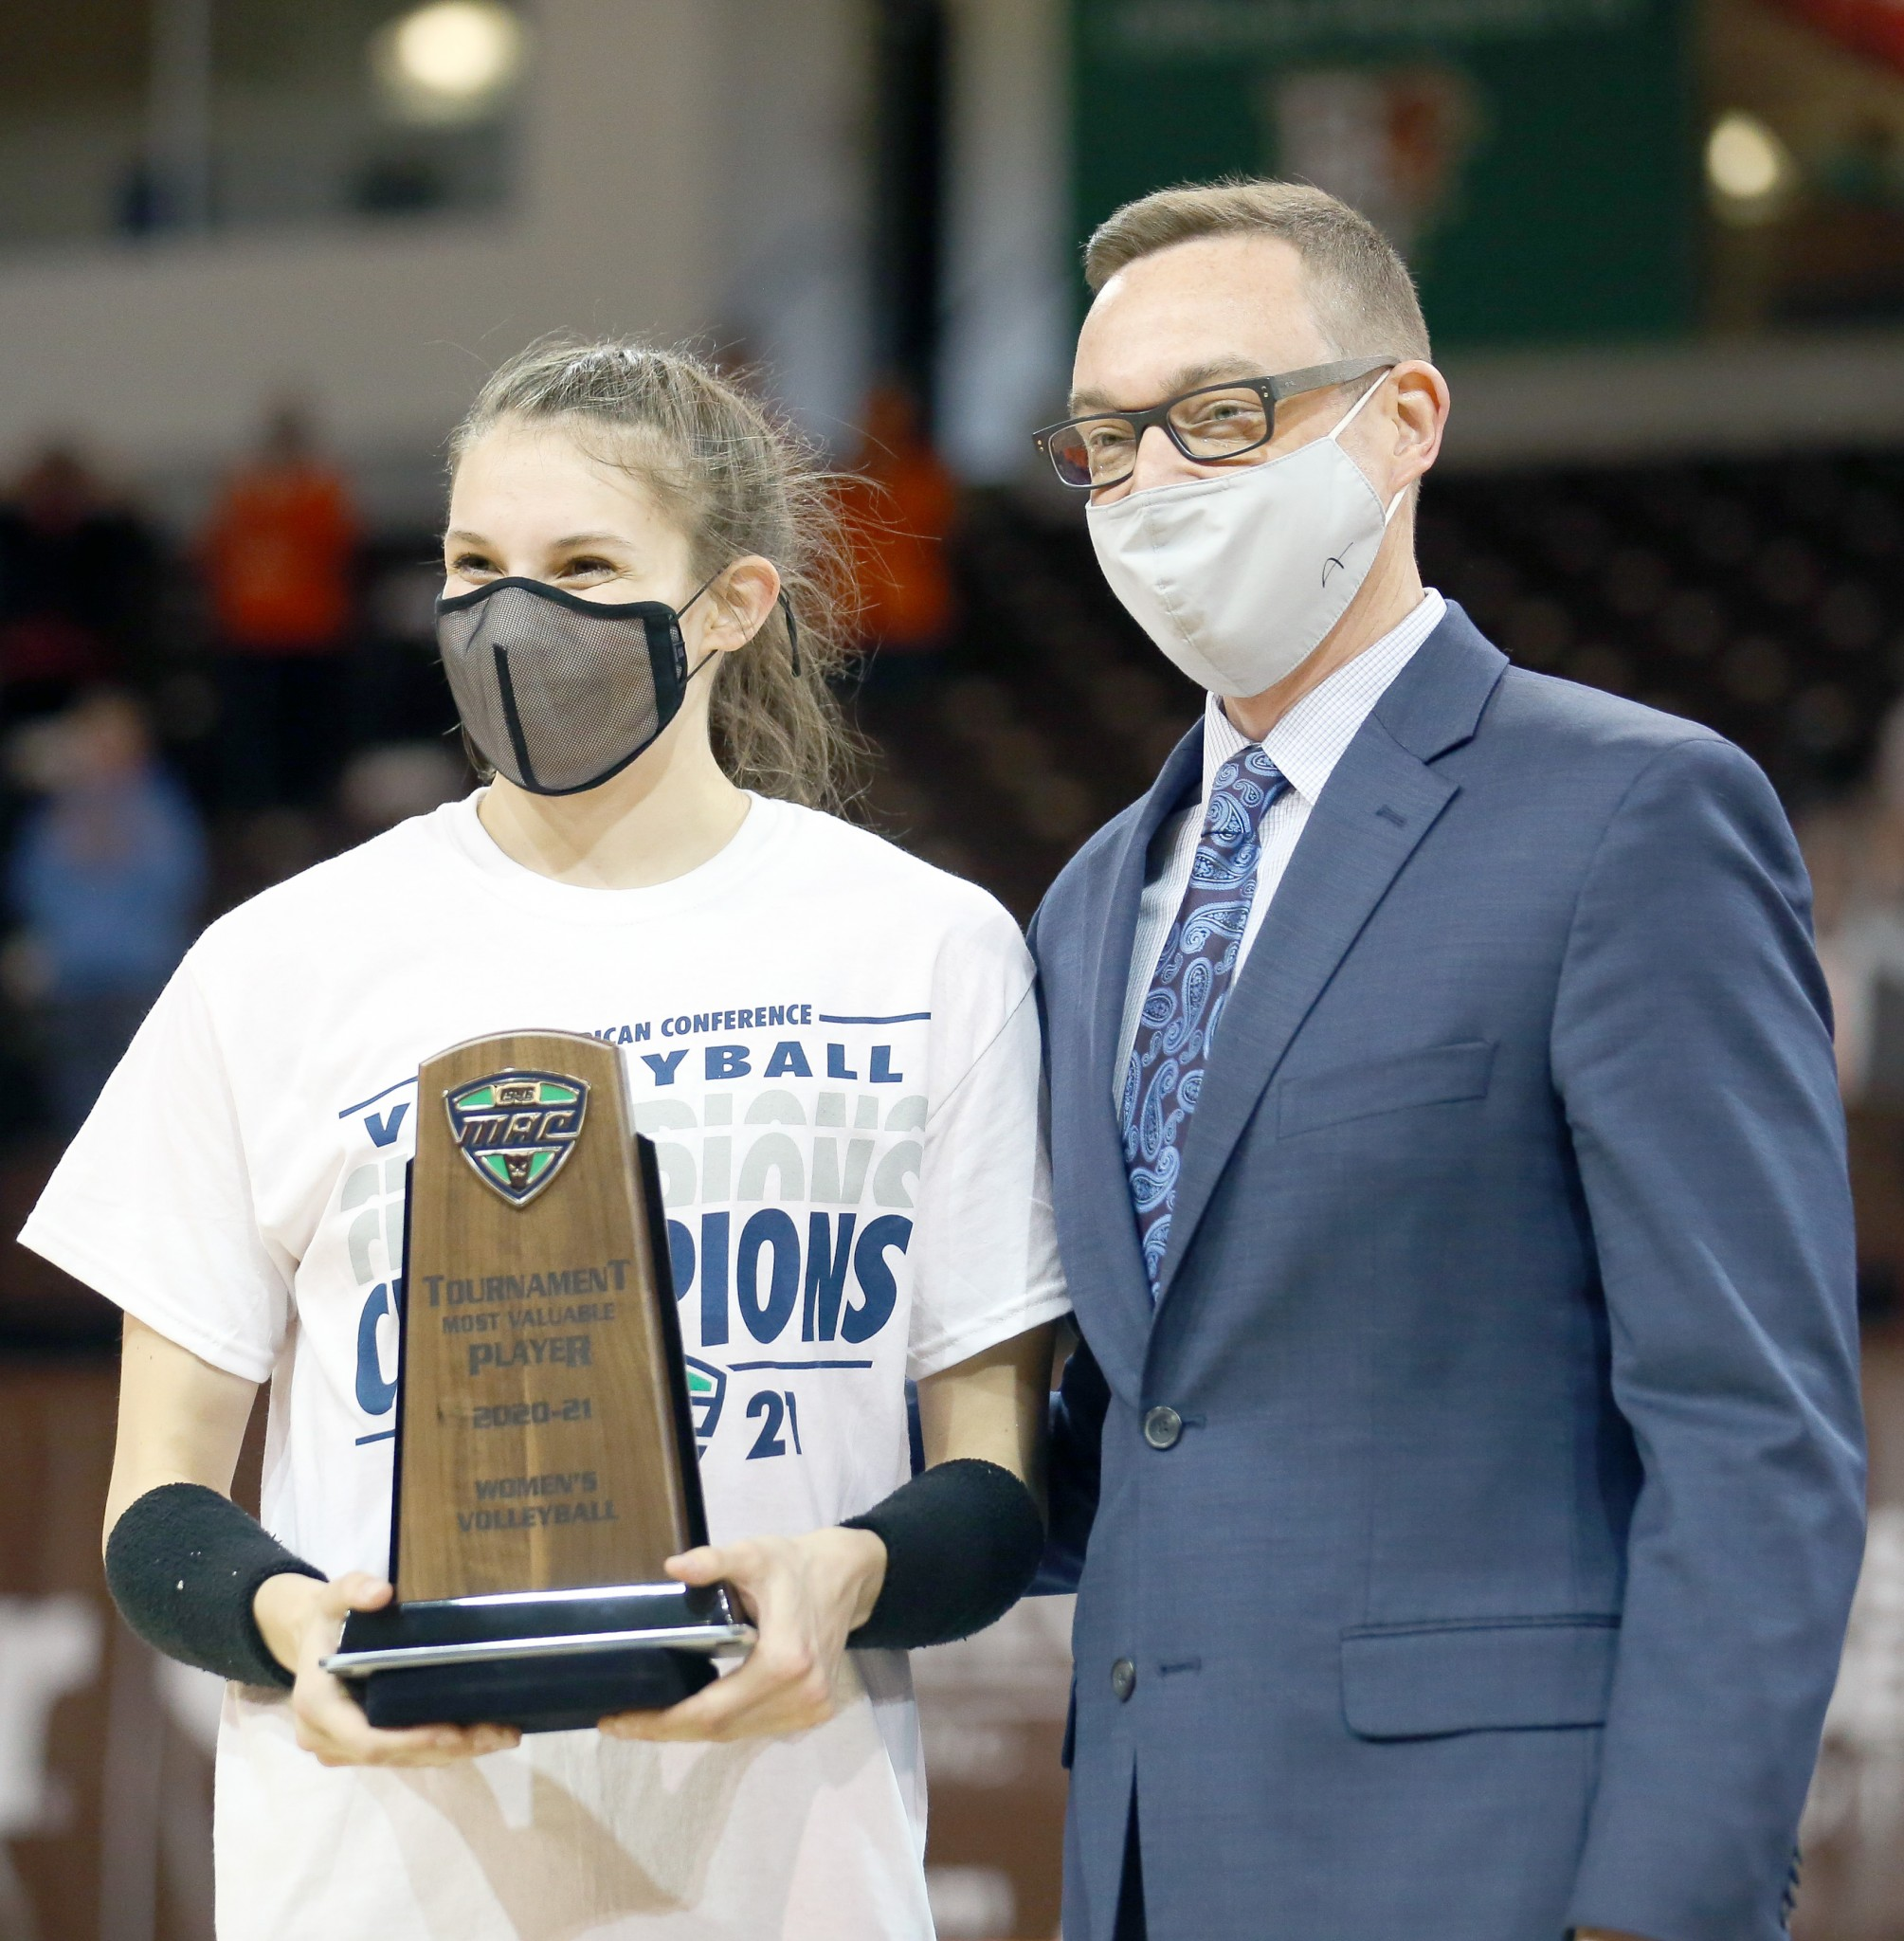 Bowling Green State University volleyball player Katelyn Meyer receiving her Mid-American Conference MVP Award. (File photo courtesy Kyle Daniel Edmond/BGSU athletic communications)